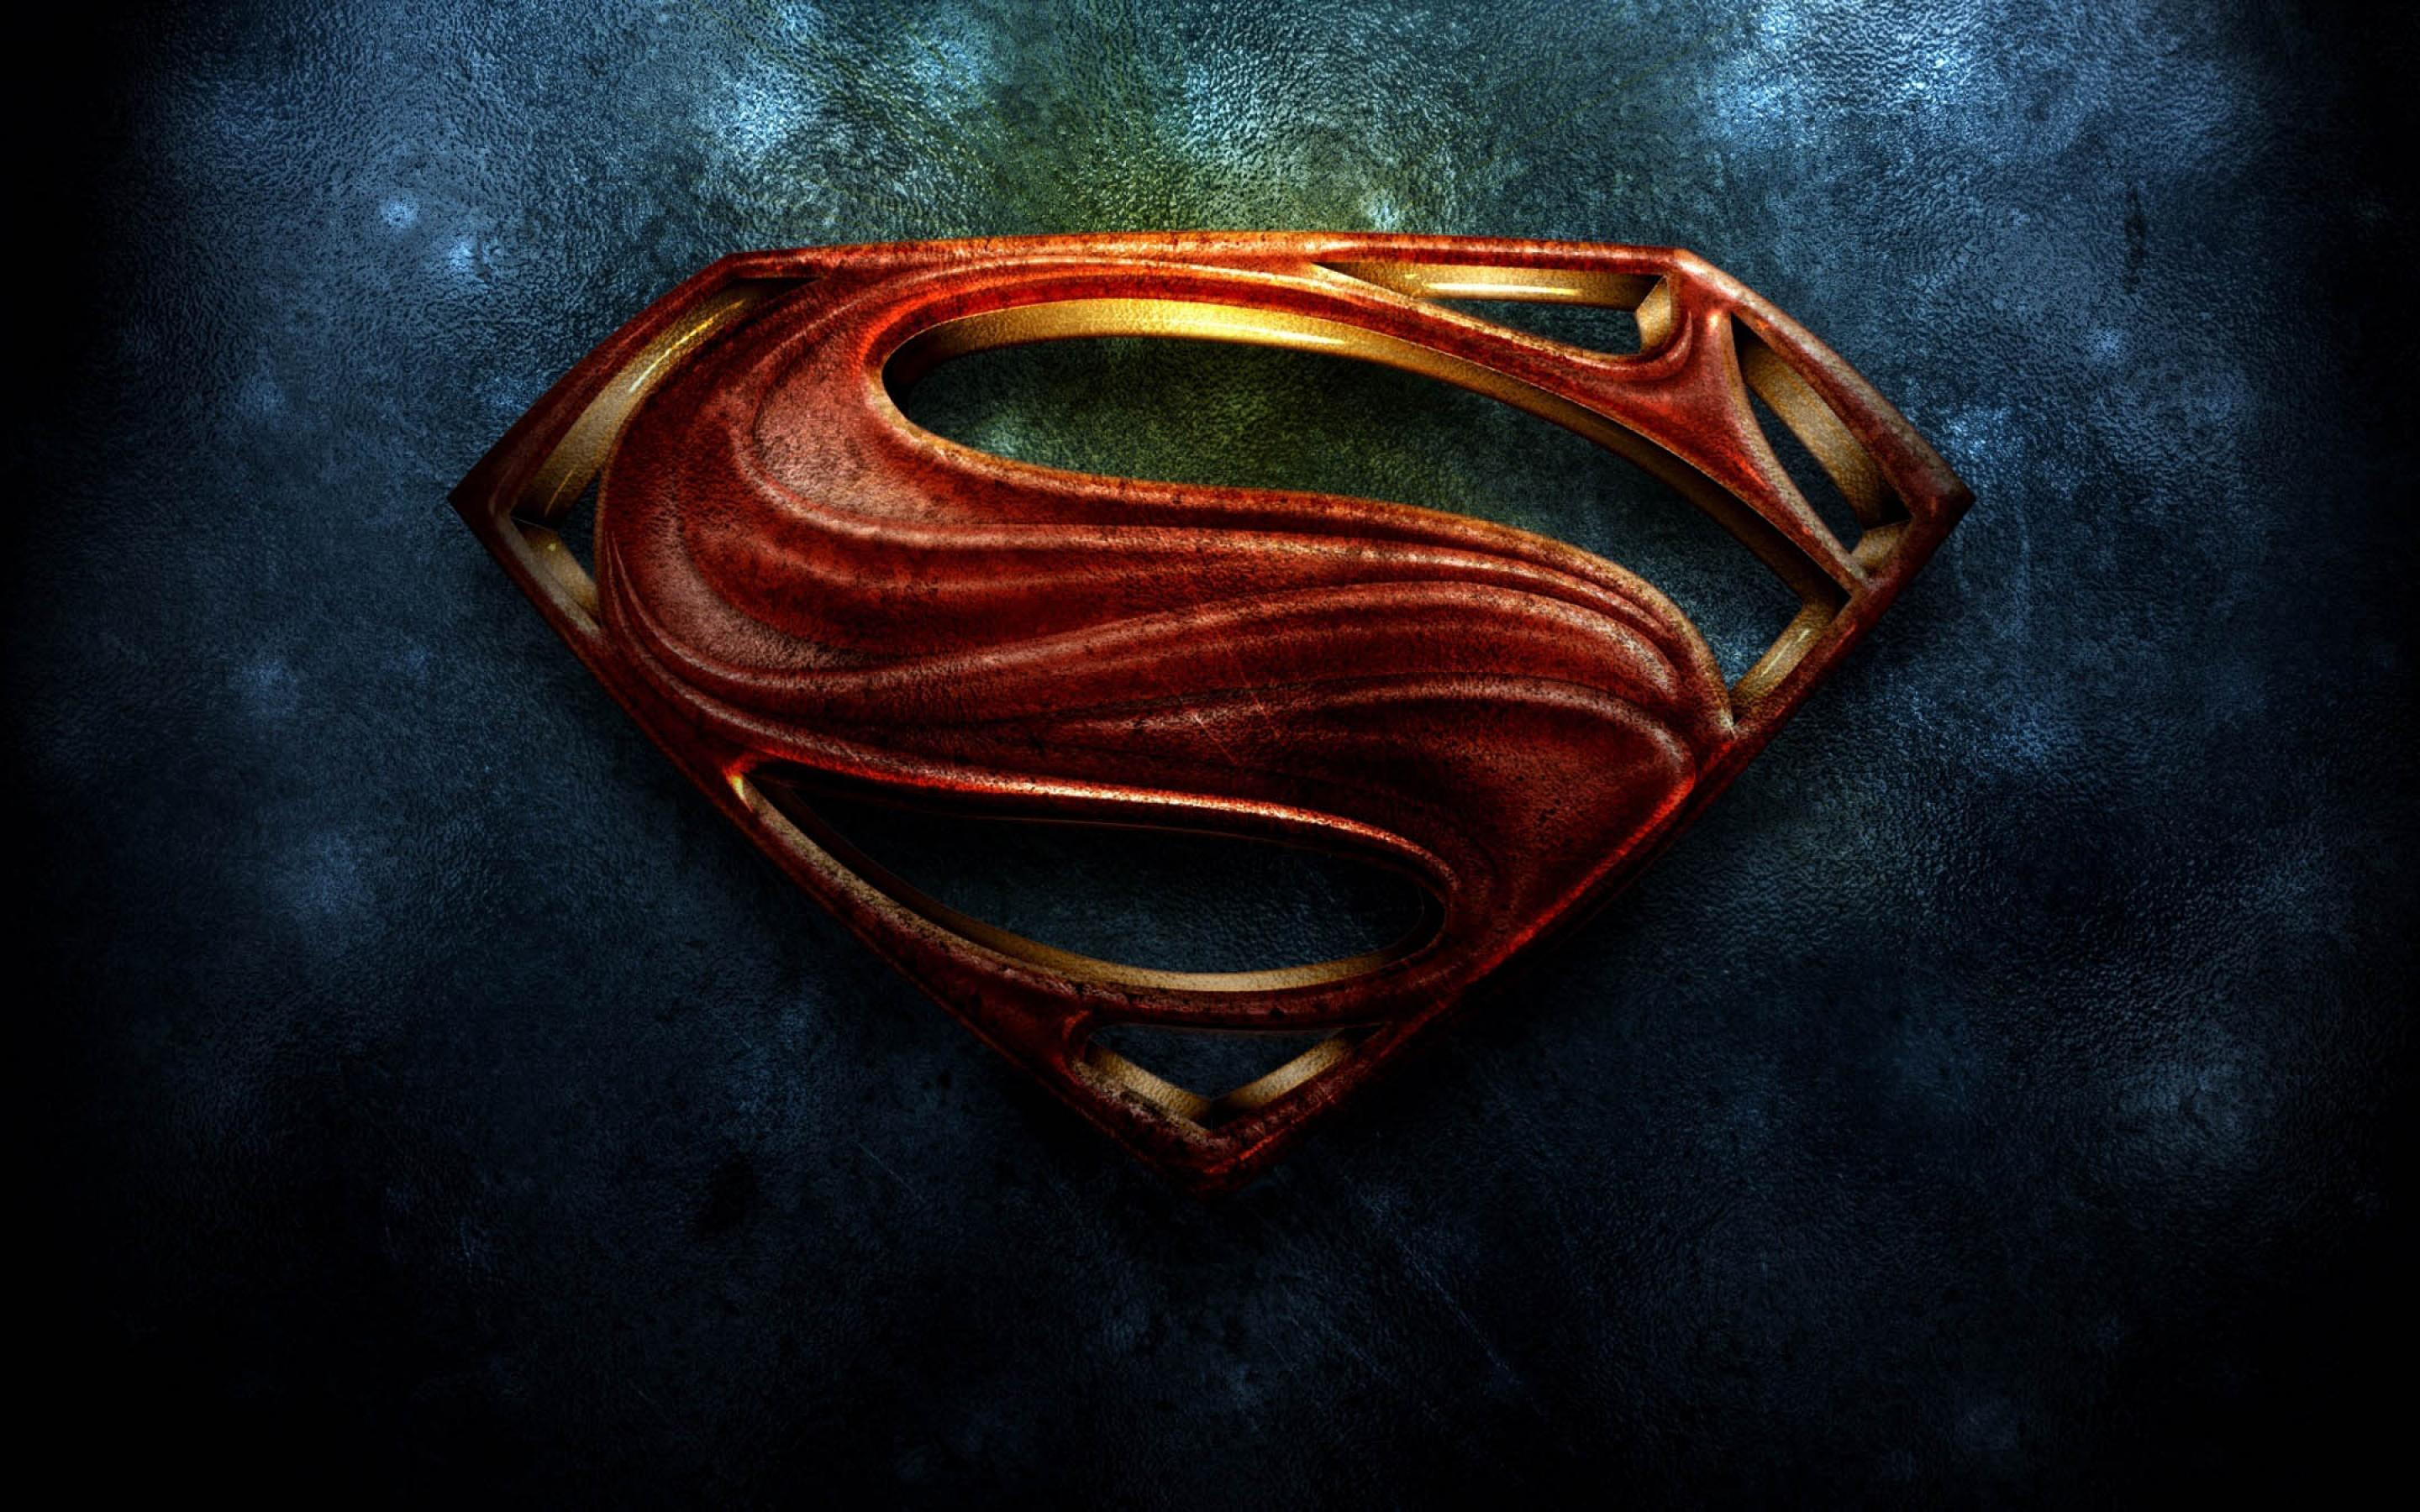 Man Of Steel Movie Poster Wallpapers Widescreen 7097 Full HD